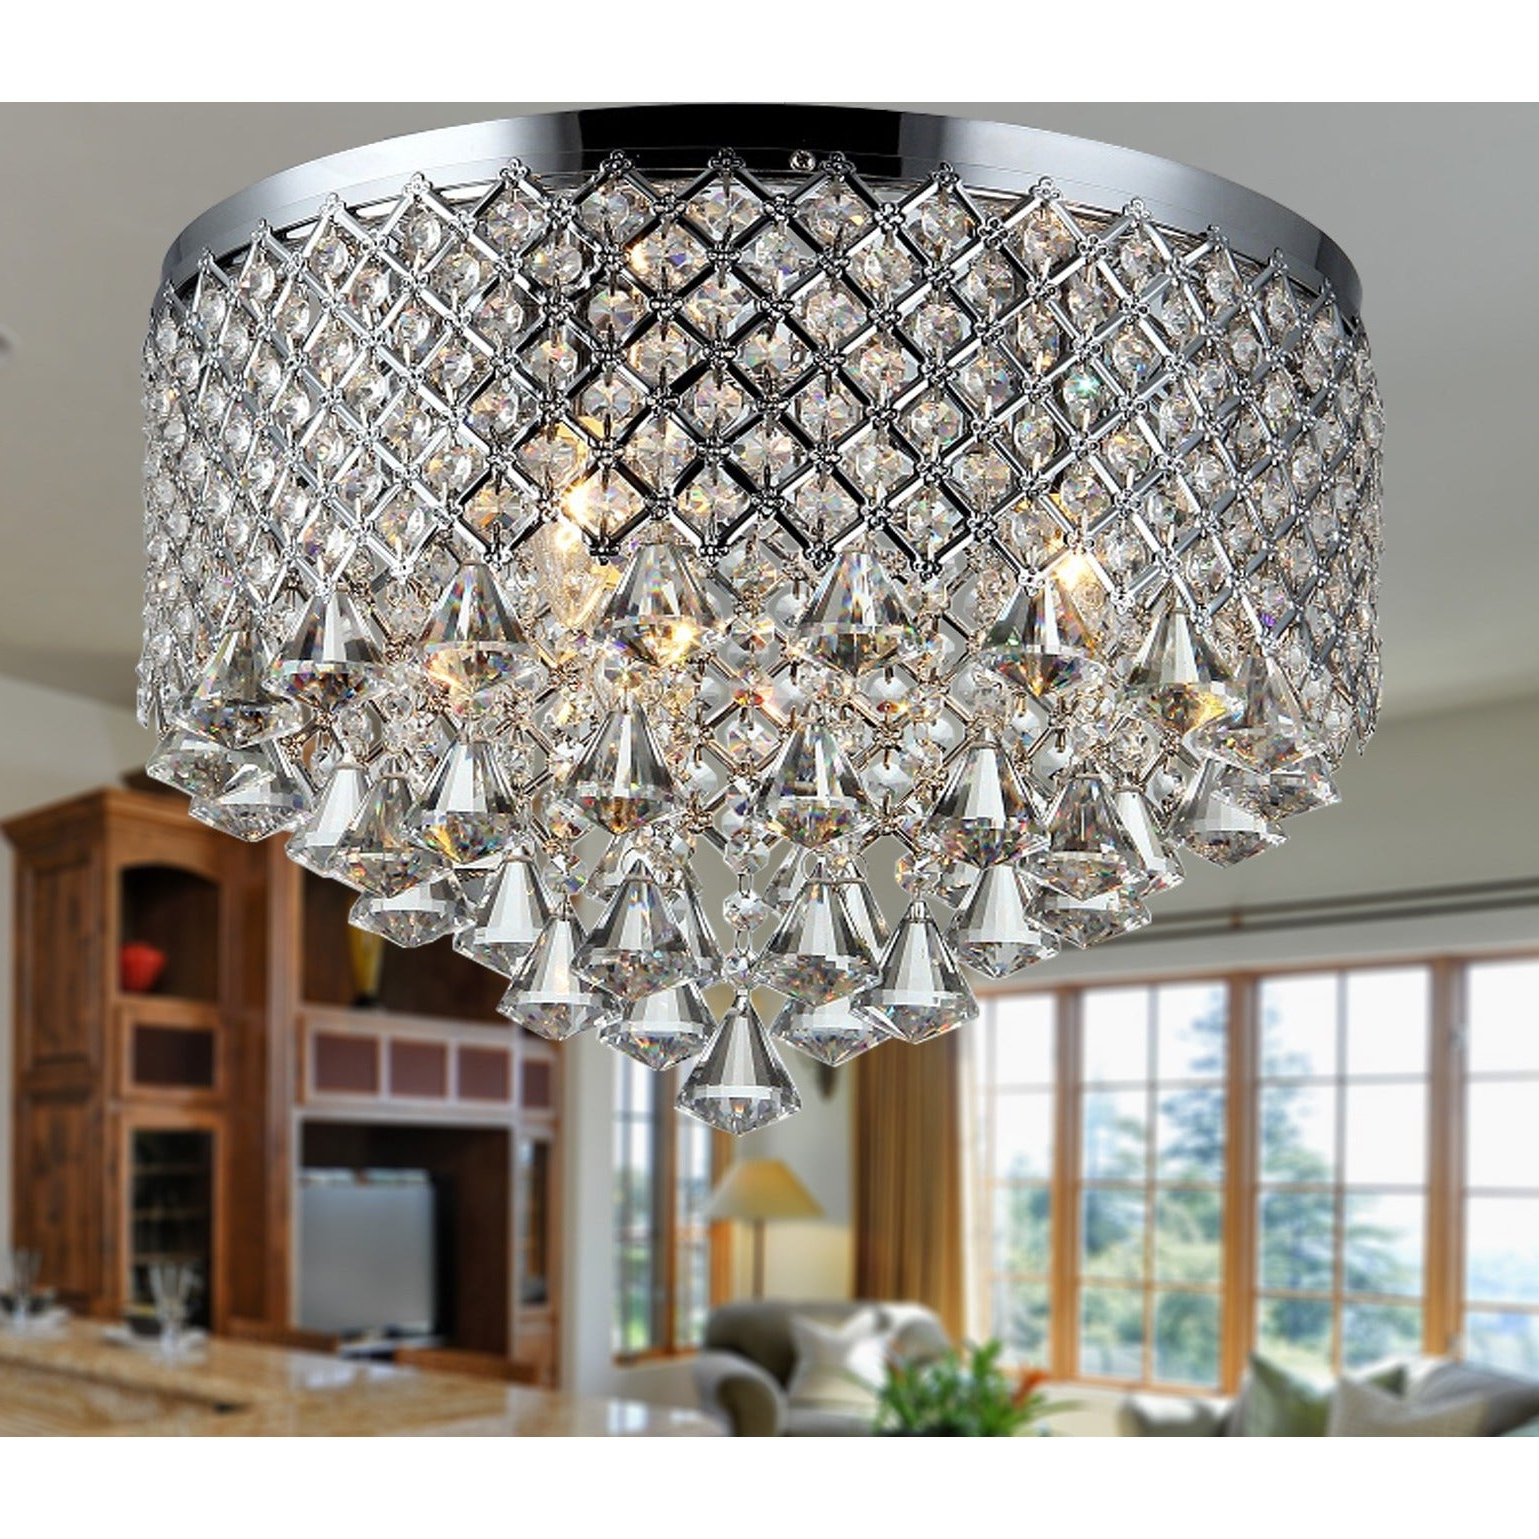 Widely Used Clea 3 Light Crystal Chandeliers With Regard To Trey 3 Light Chrome 16 Inch Crystal Flush Mount (View 20 of 20)